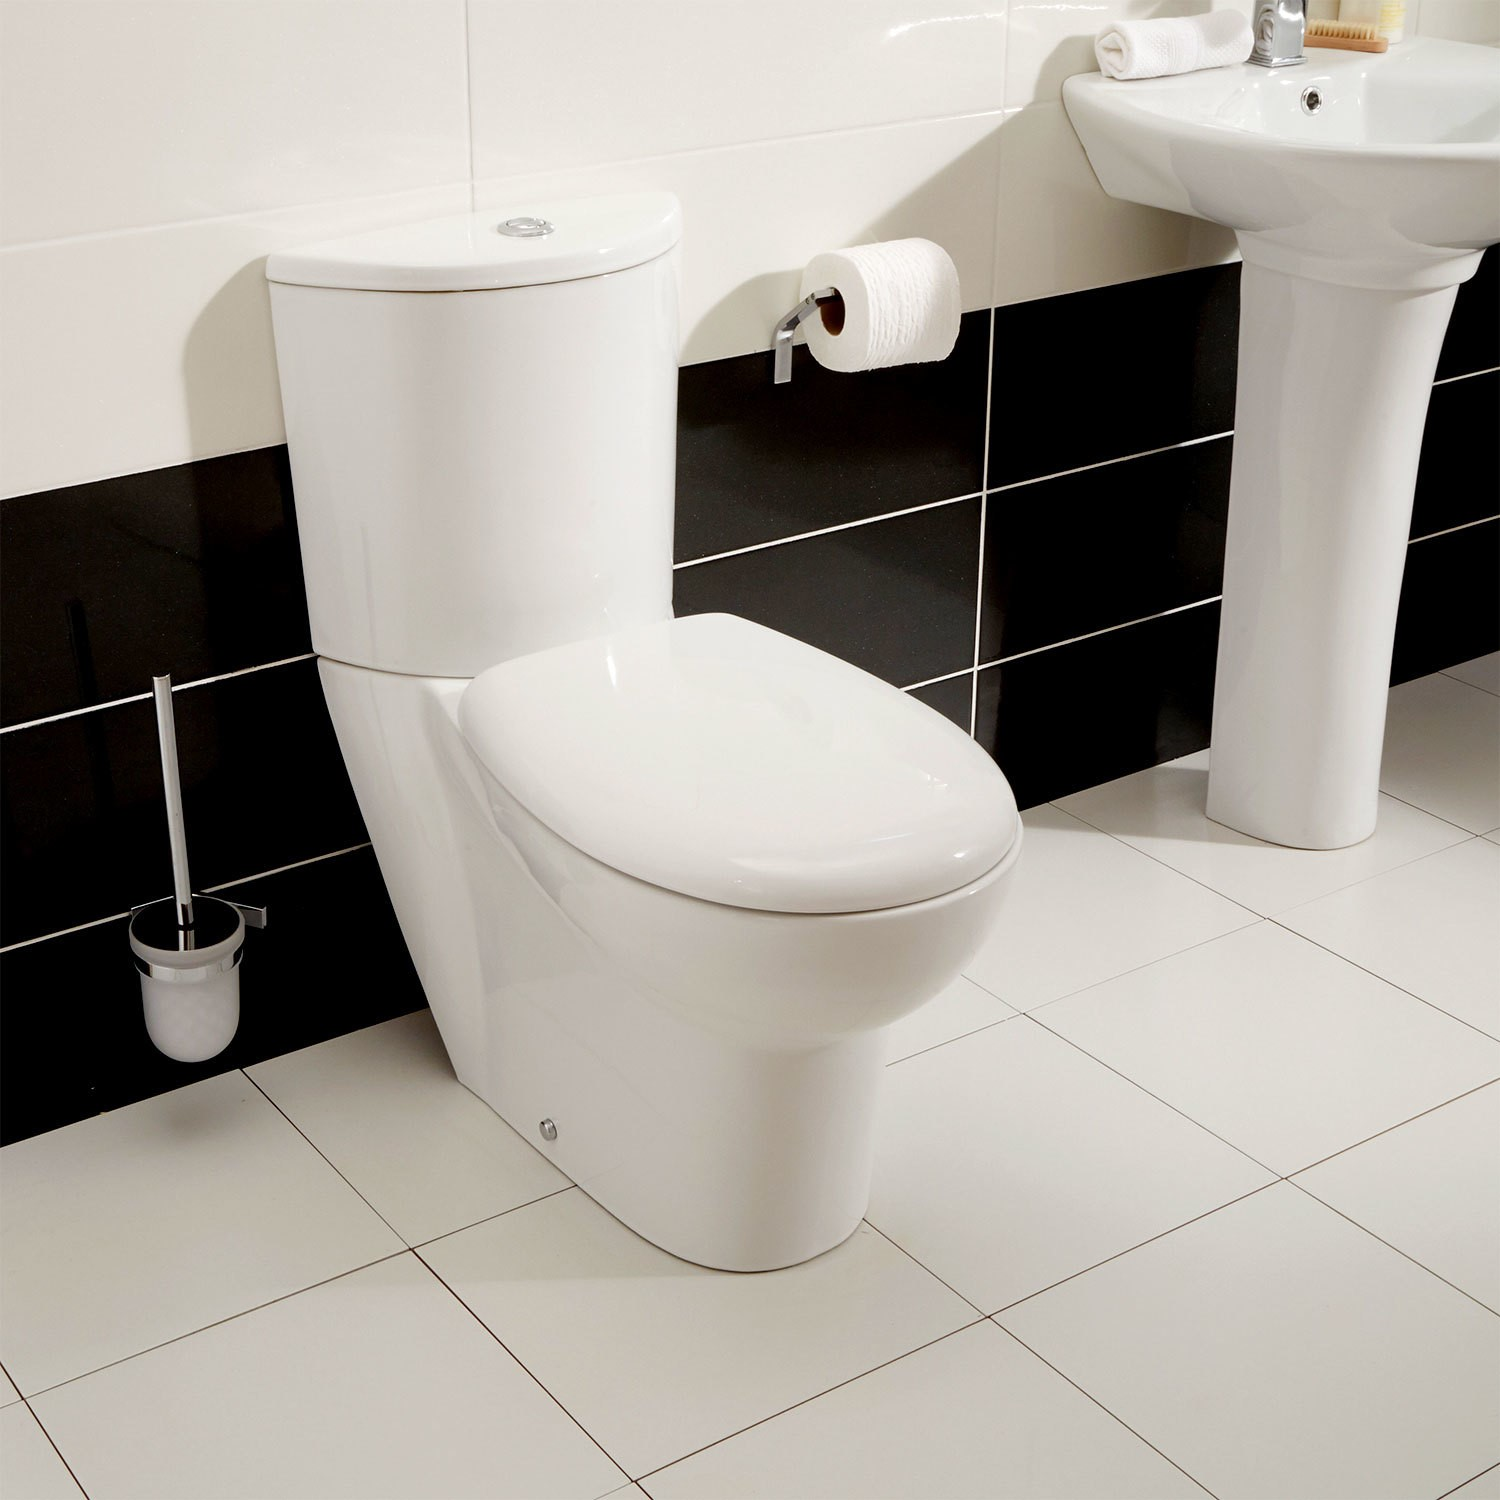 Plumbing Tools Prima Close Coupled Toilet and Seat